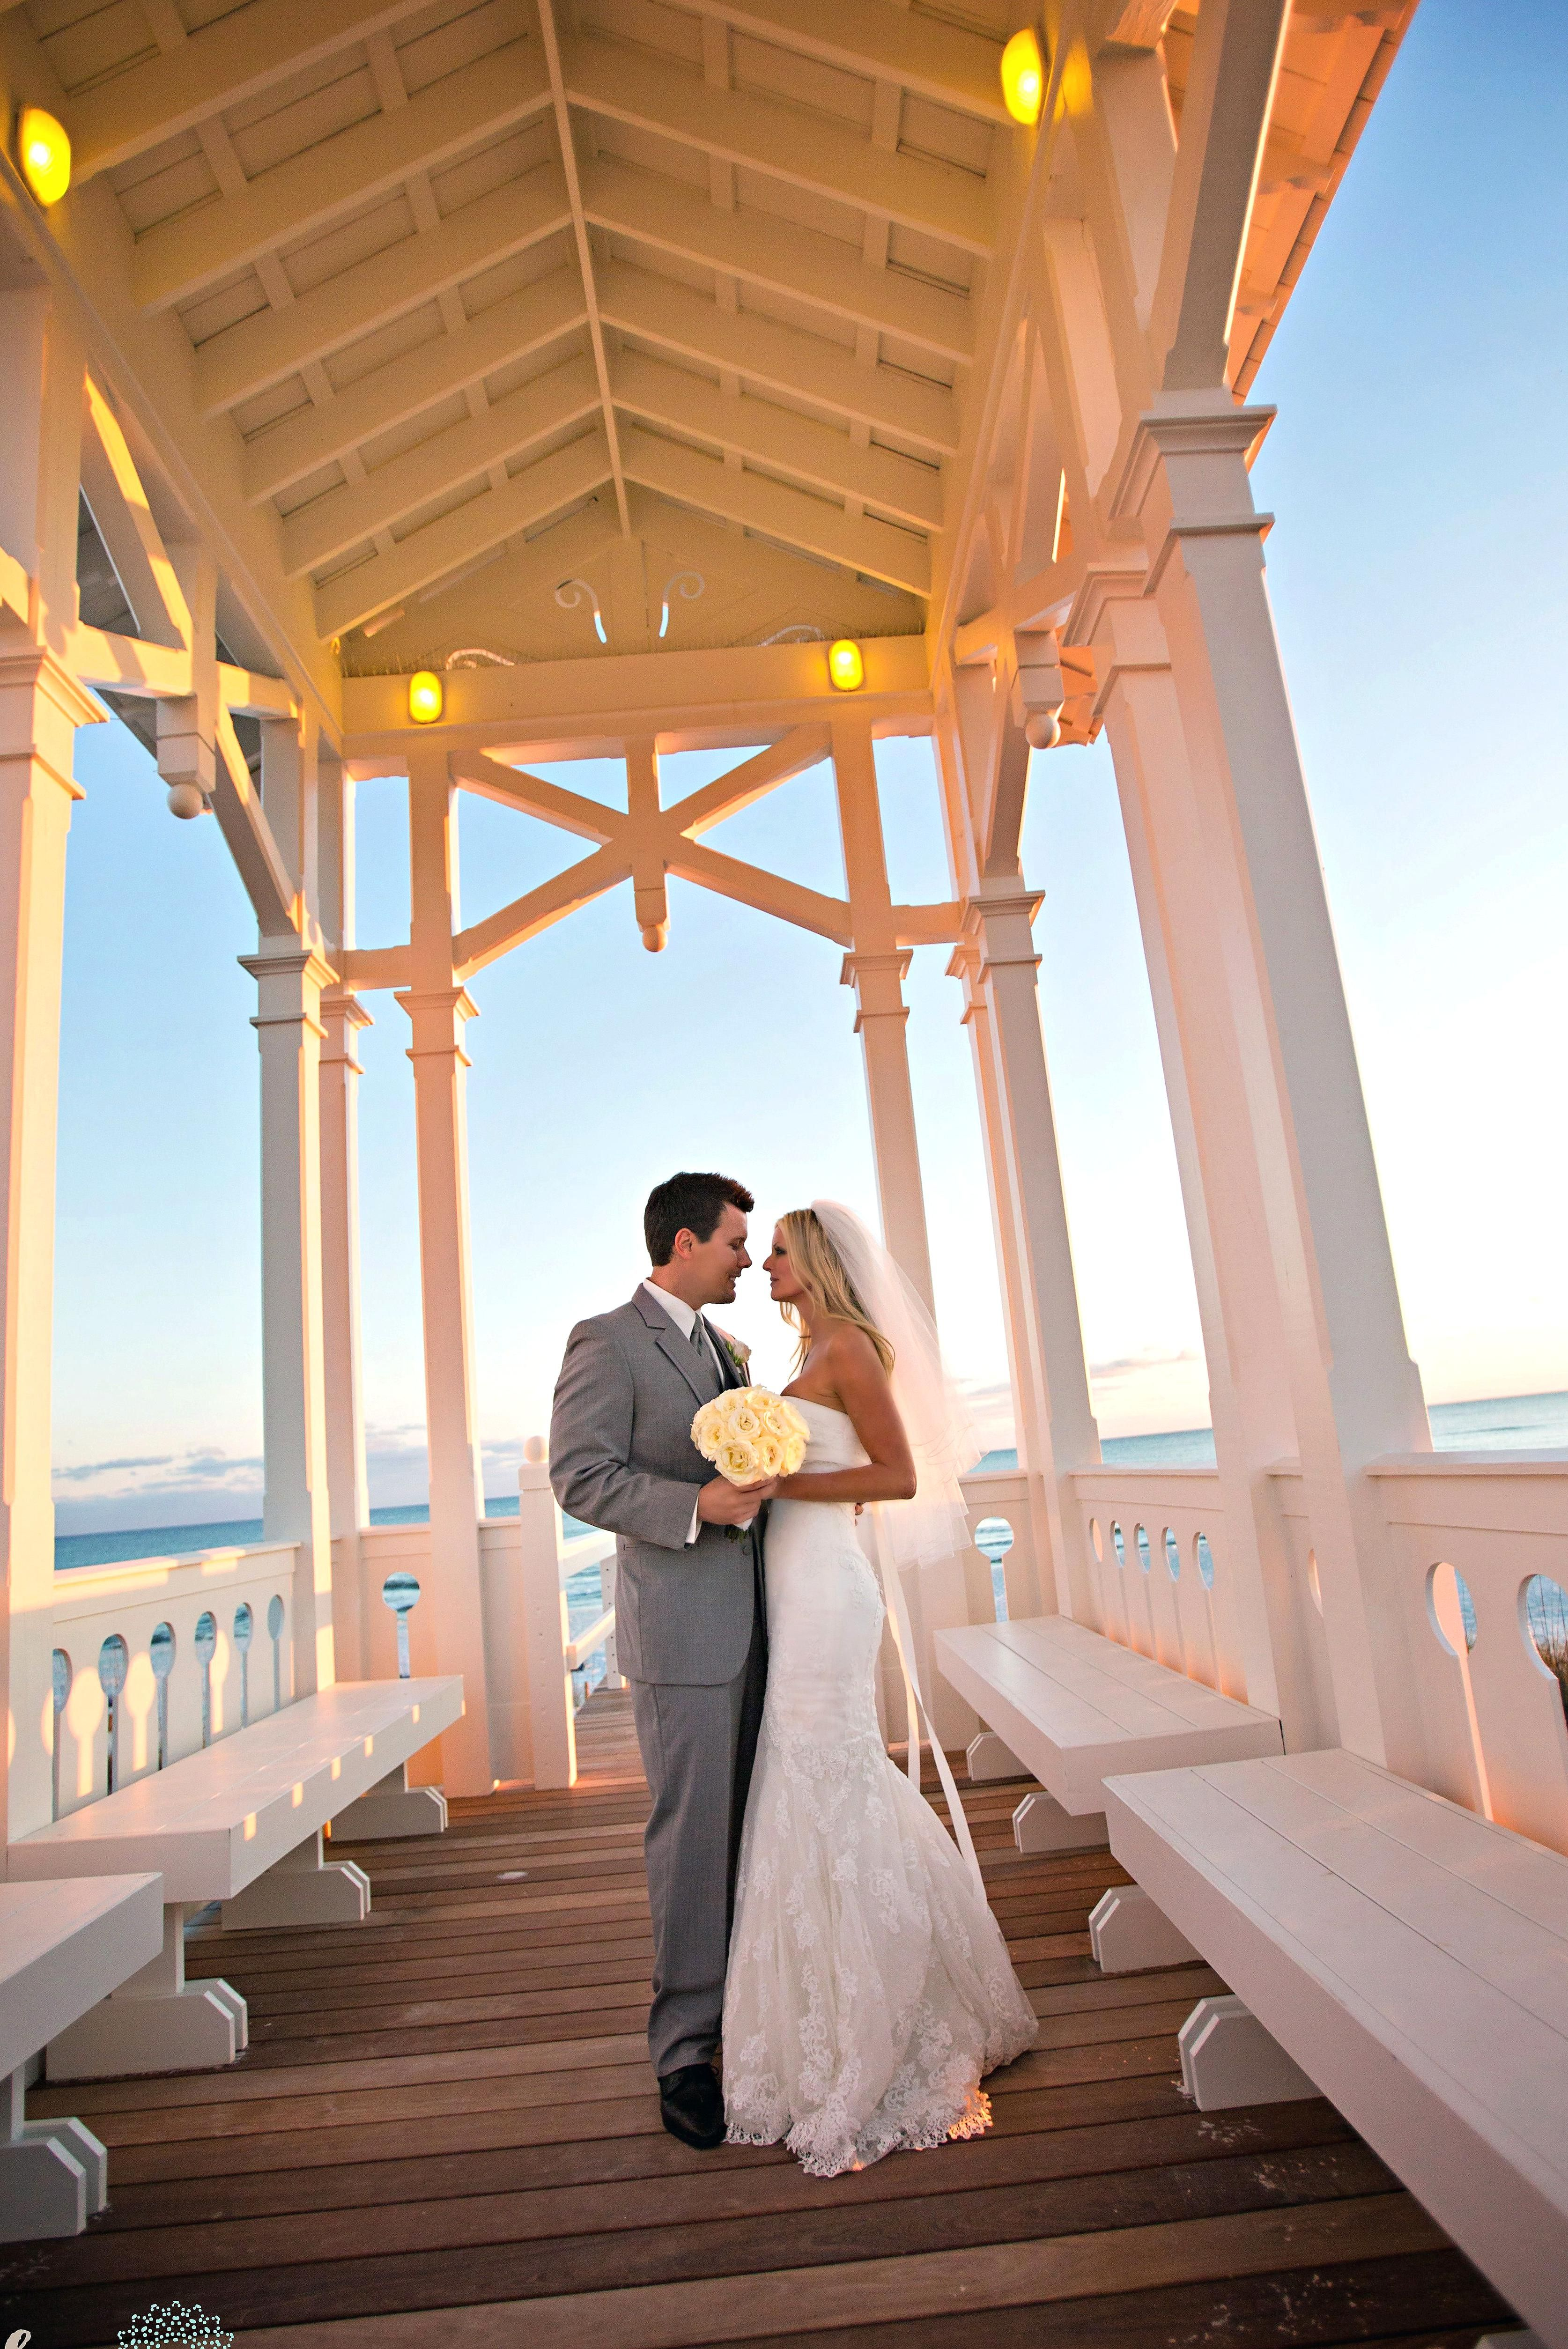 Panamacitybeach Is The Perfect Spot To Celebrate Your Love Plan The Wedding Of You In 2020 Panama City Beach Wedding Florida Wedding Venues Beach Wedding Venues Beach